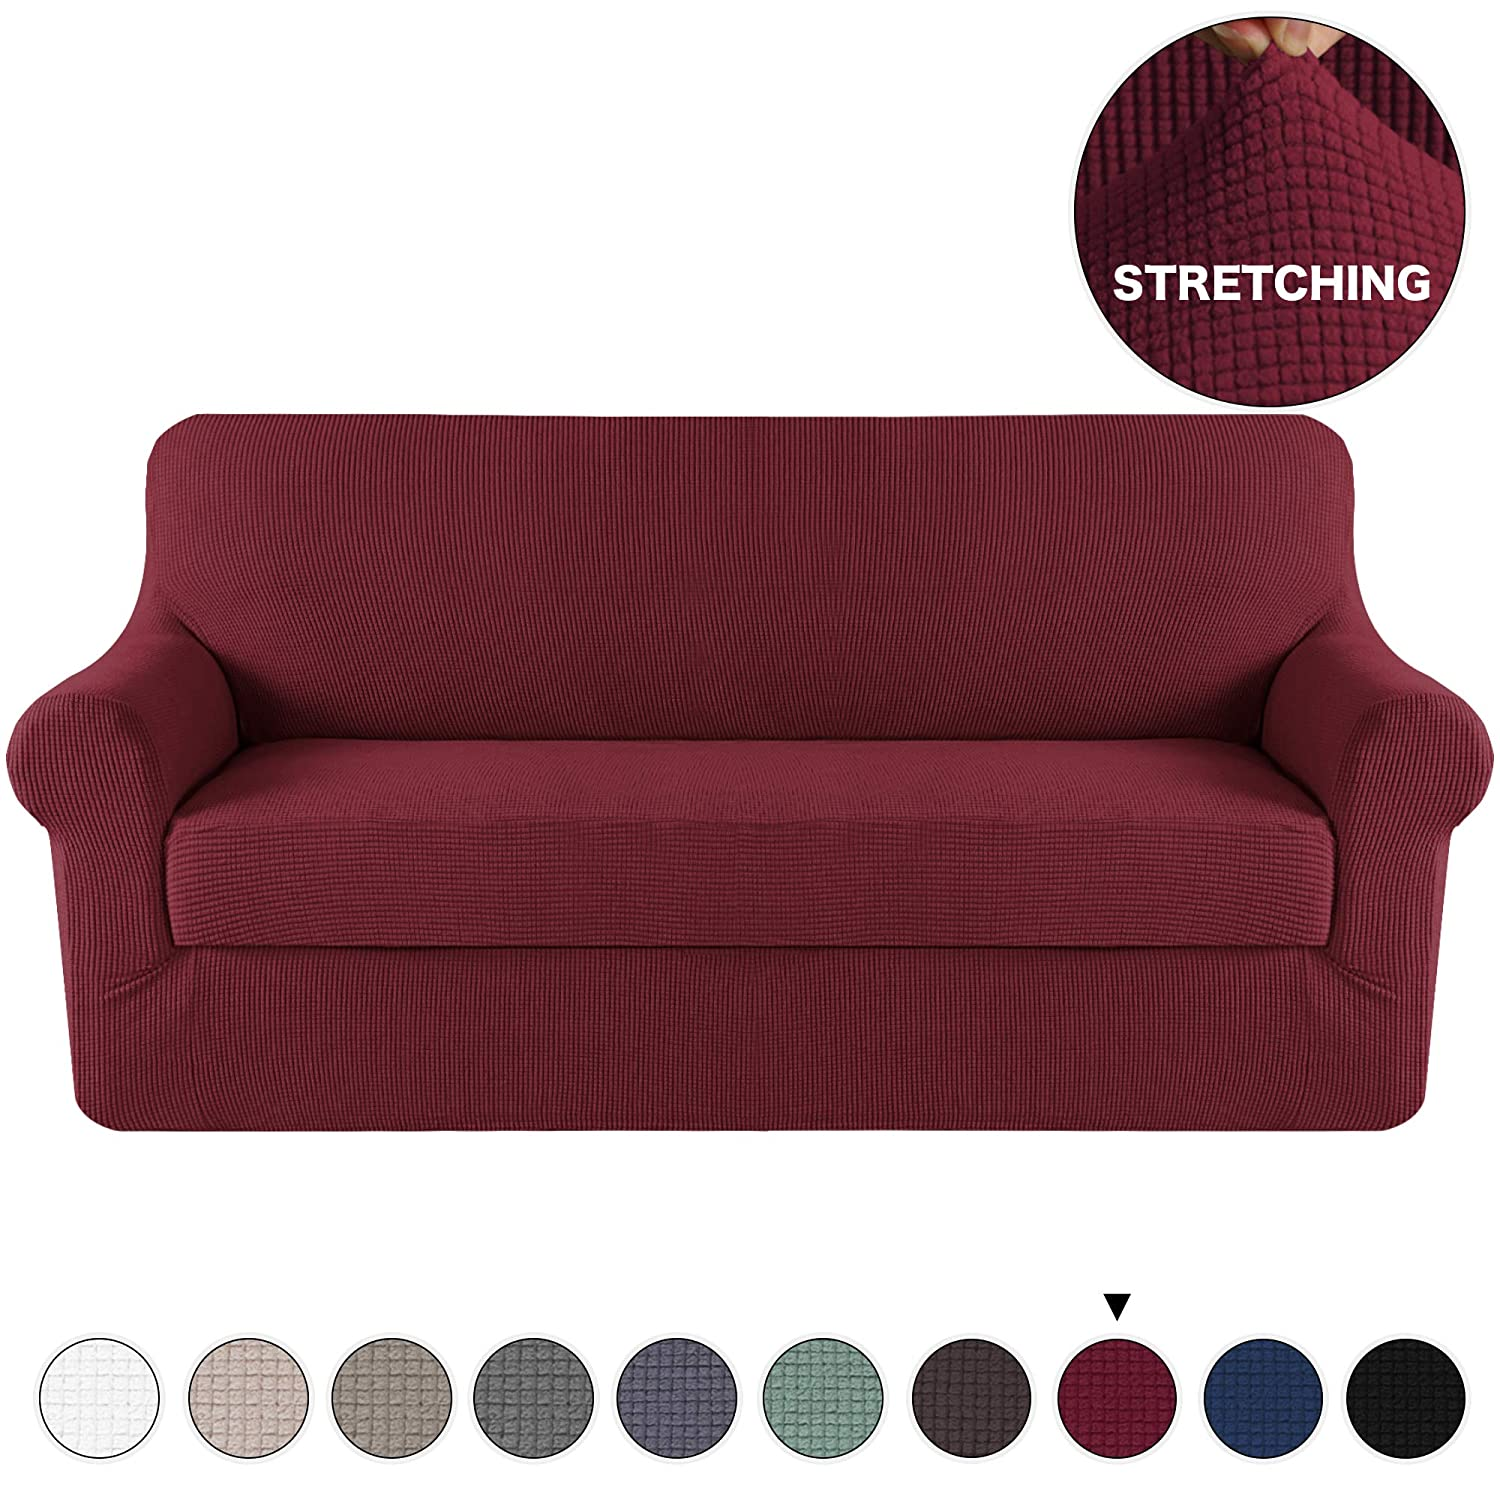 Spandex Sofa Cover Stretch Jacquard Furniture Protector 2 Piece Couch Cover  Burgundy for 3 Seat Couch Slipcover/Protector with Spandex Jacquard ...